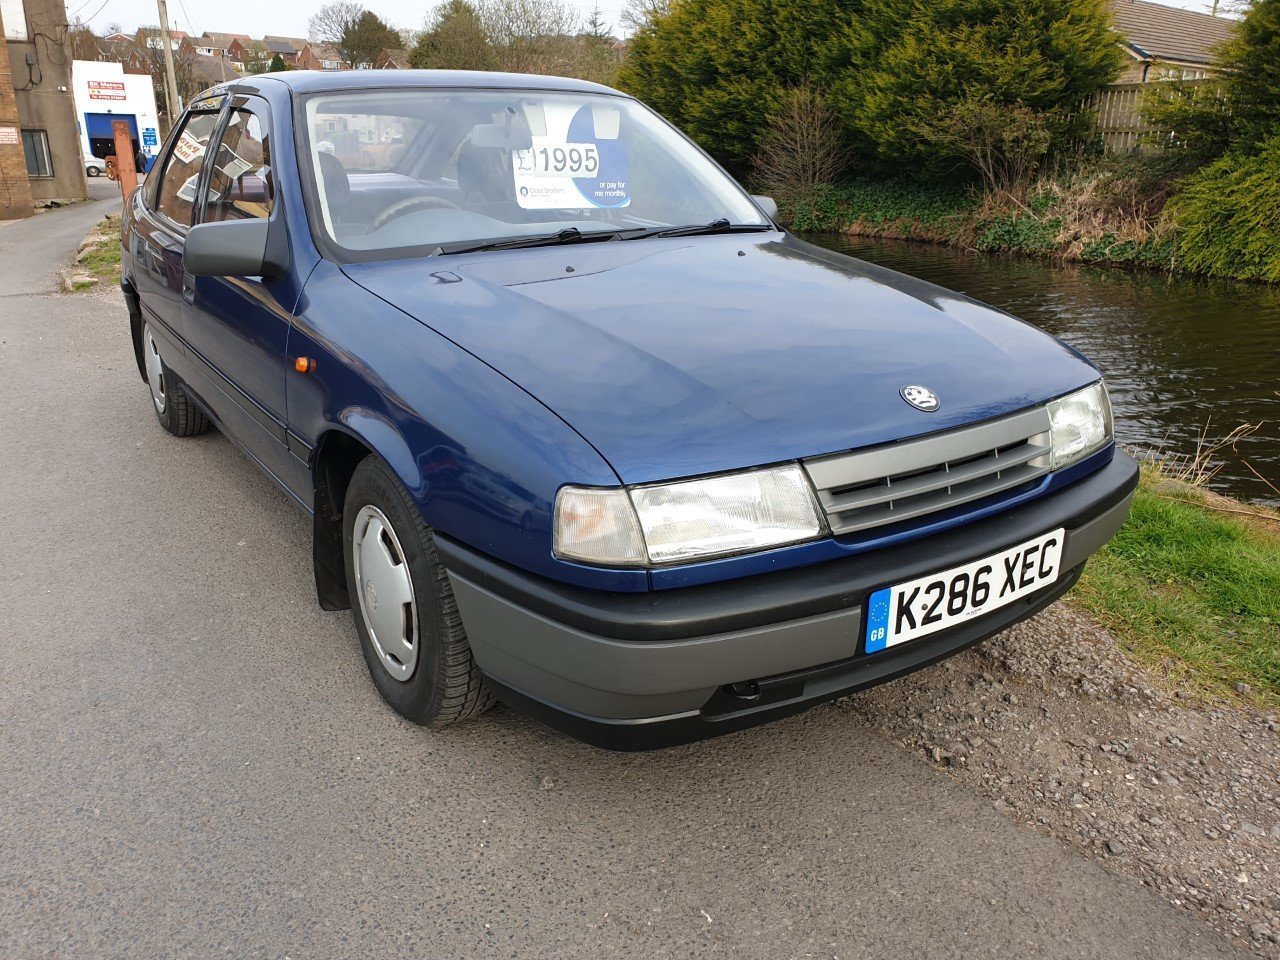 1992 Vauxhall Cavalier 1.6L Hatchback -  only 44,023 miles  For Sale (picture 1 of 6)